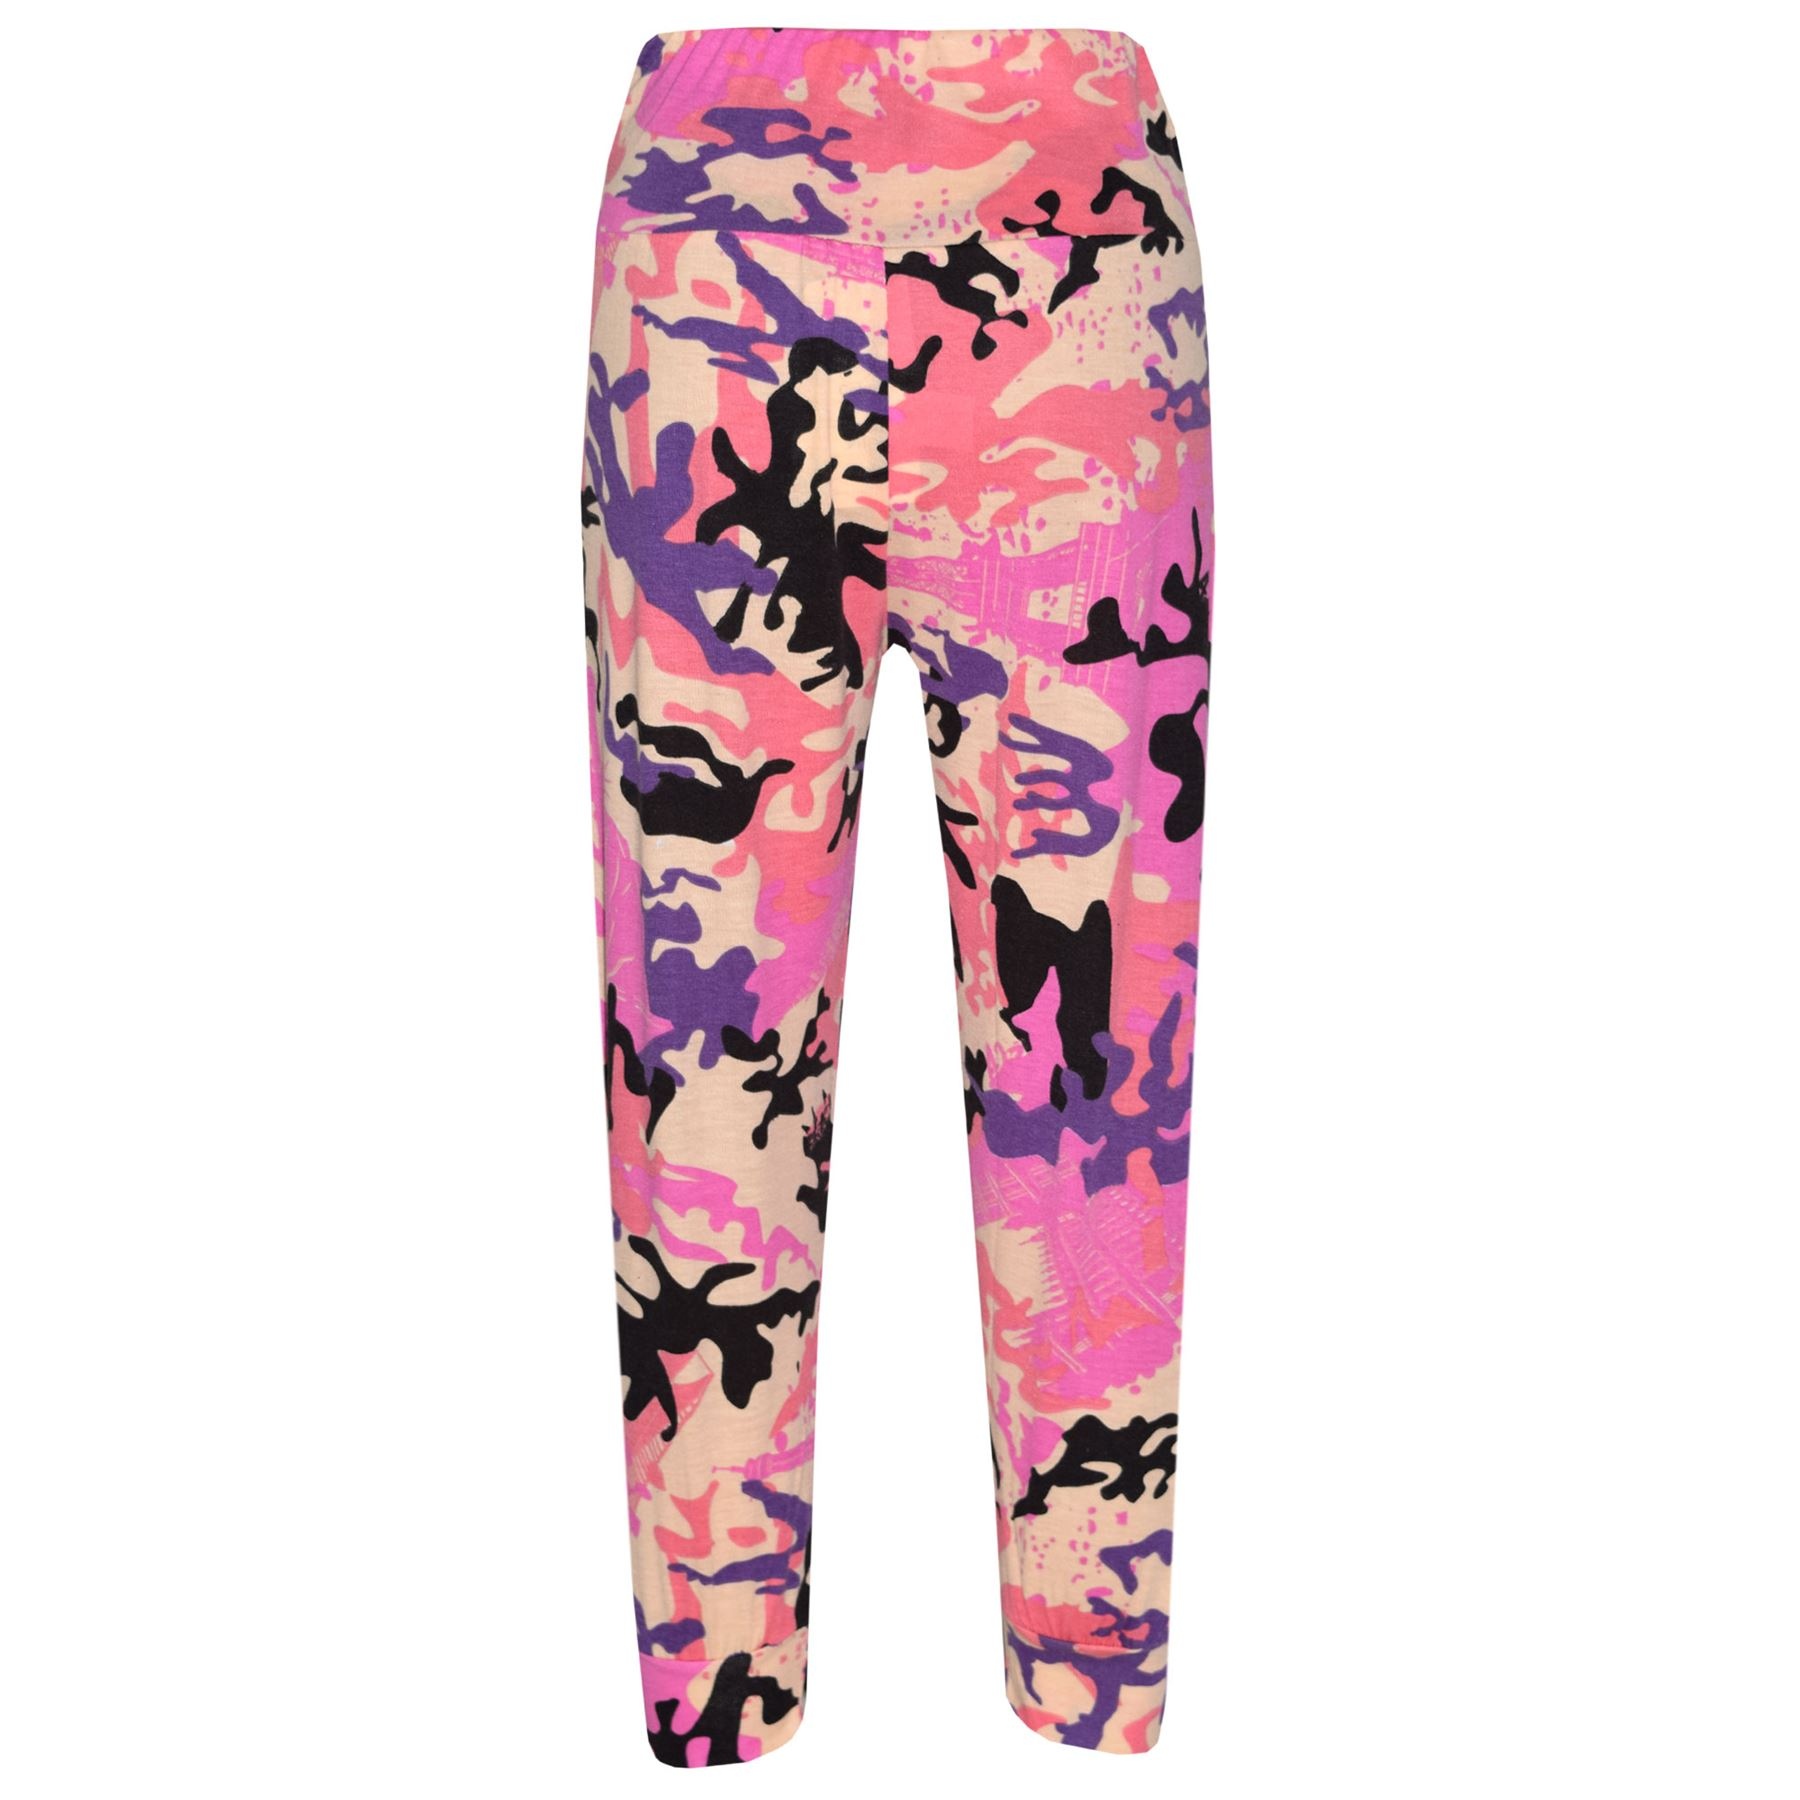 Kids-ali-baba-plain-color-modern-style-trousers-2-13-years thumbnail 7